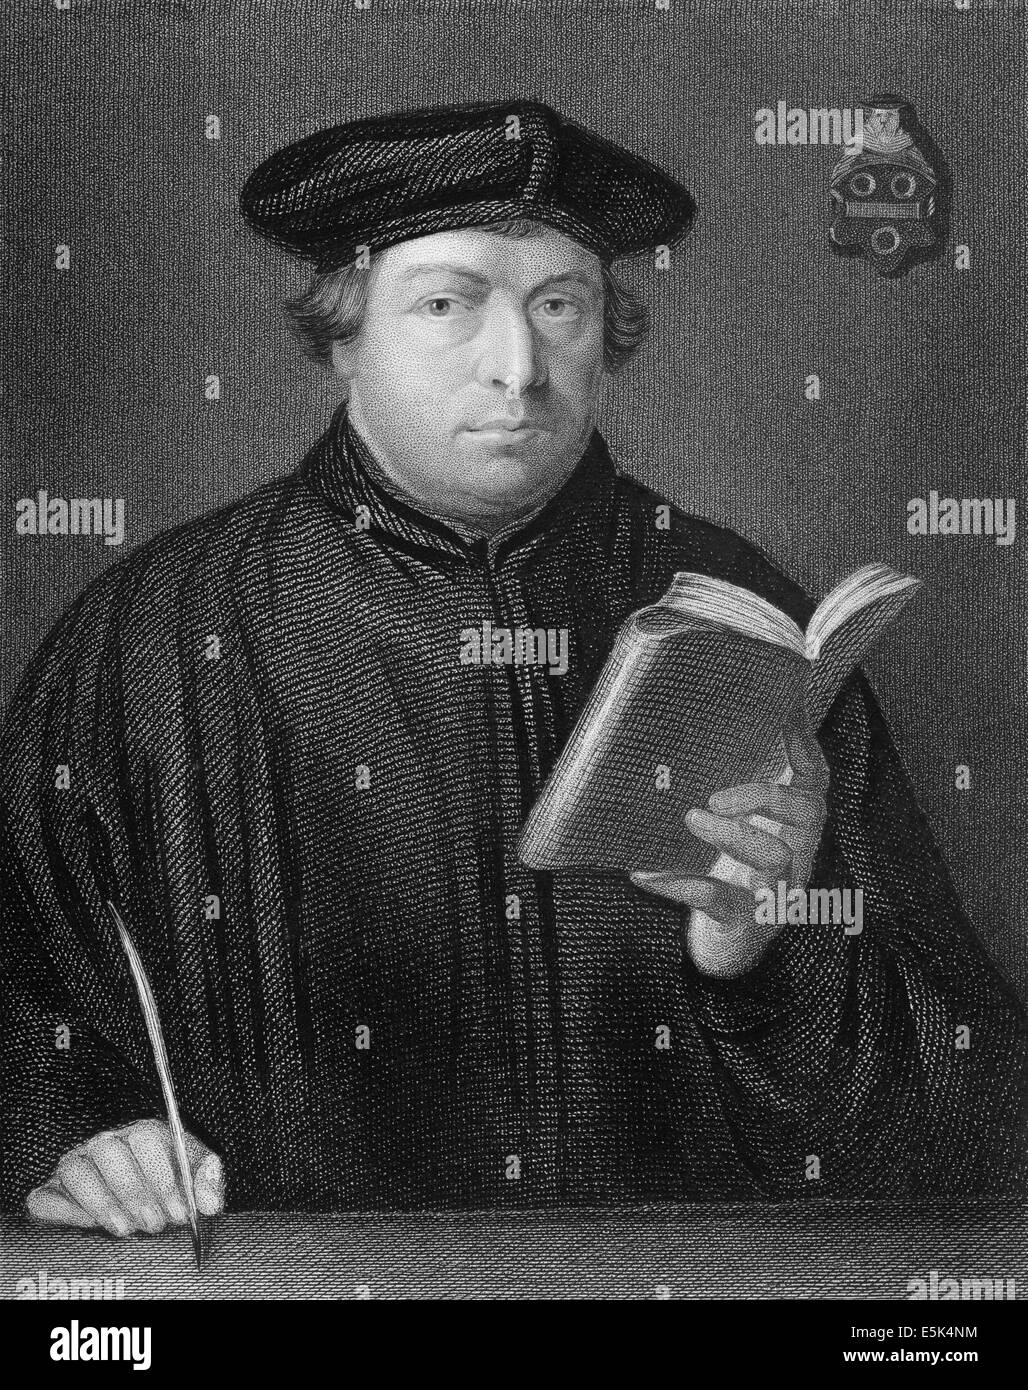 Martin Luther, 1483 - 1546, theologian and reformer, Stock Photo